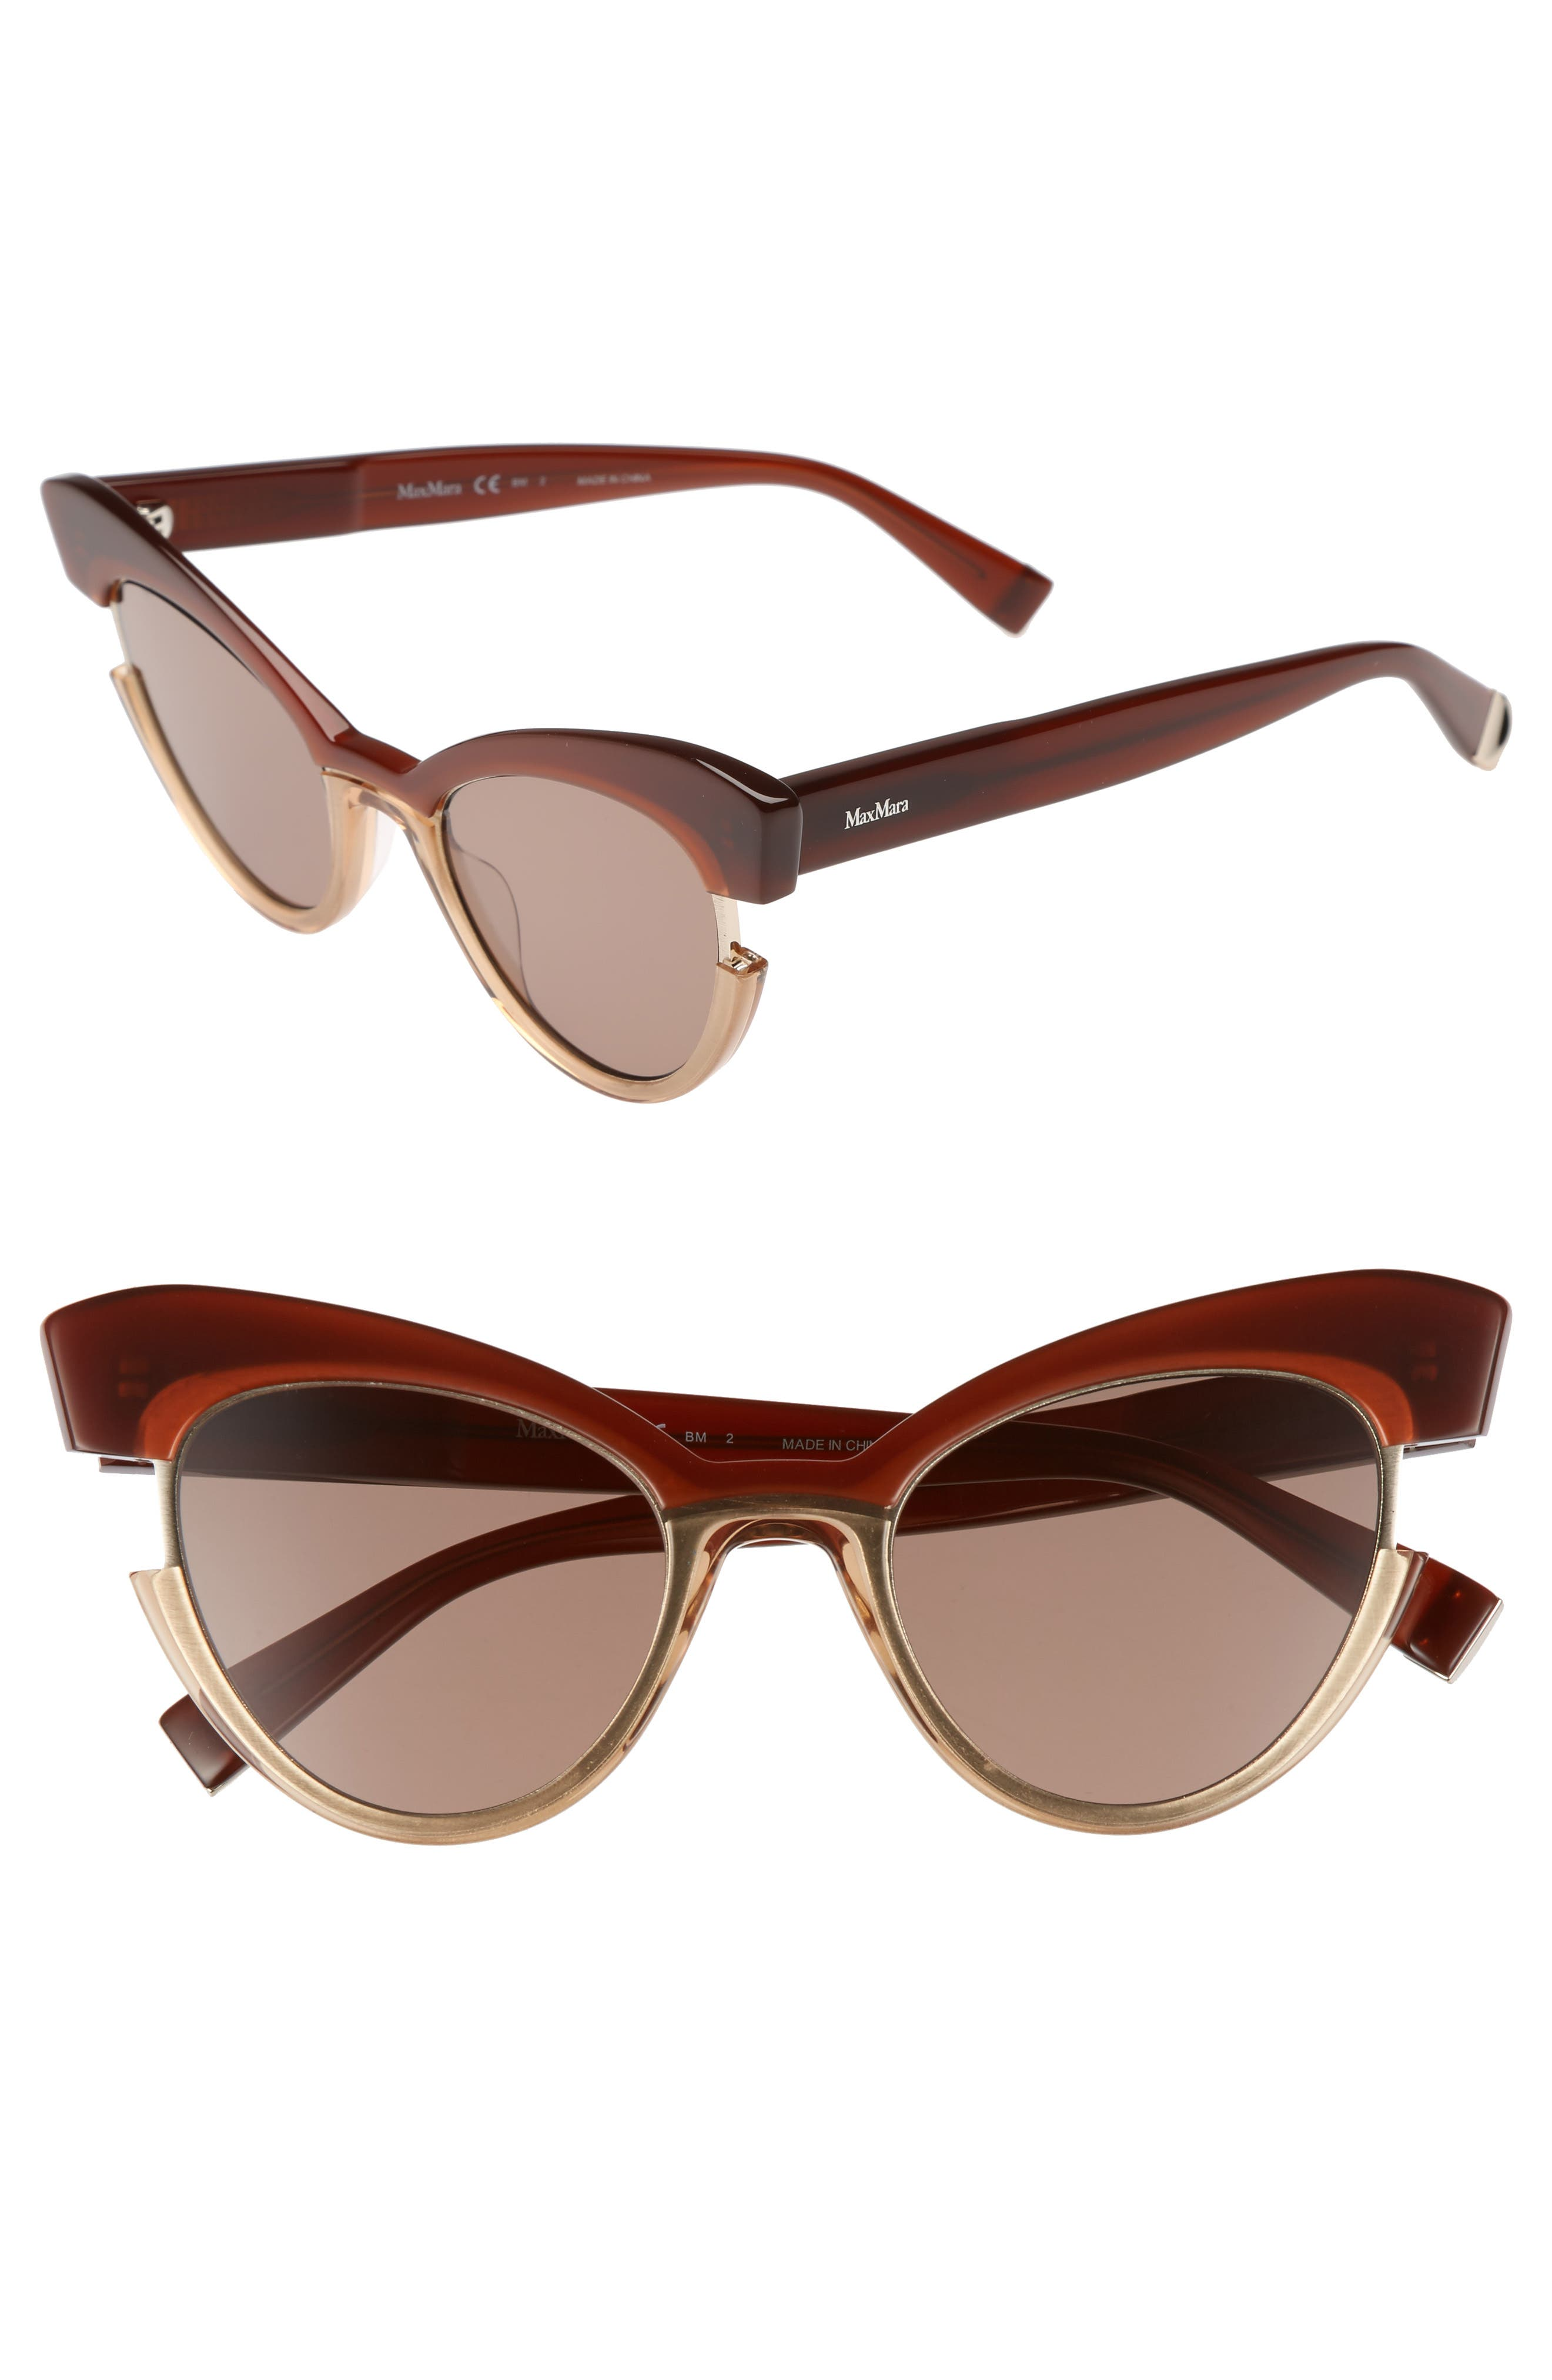 Max Mara 49mm Gradient Lens Cat Eye Sunglasses